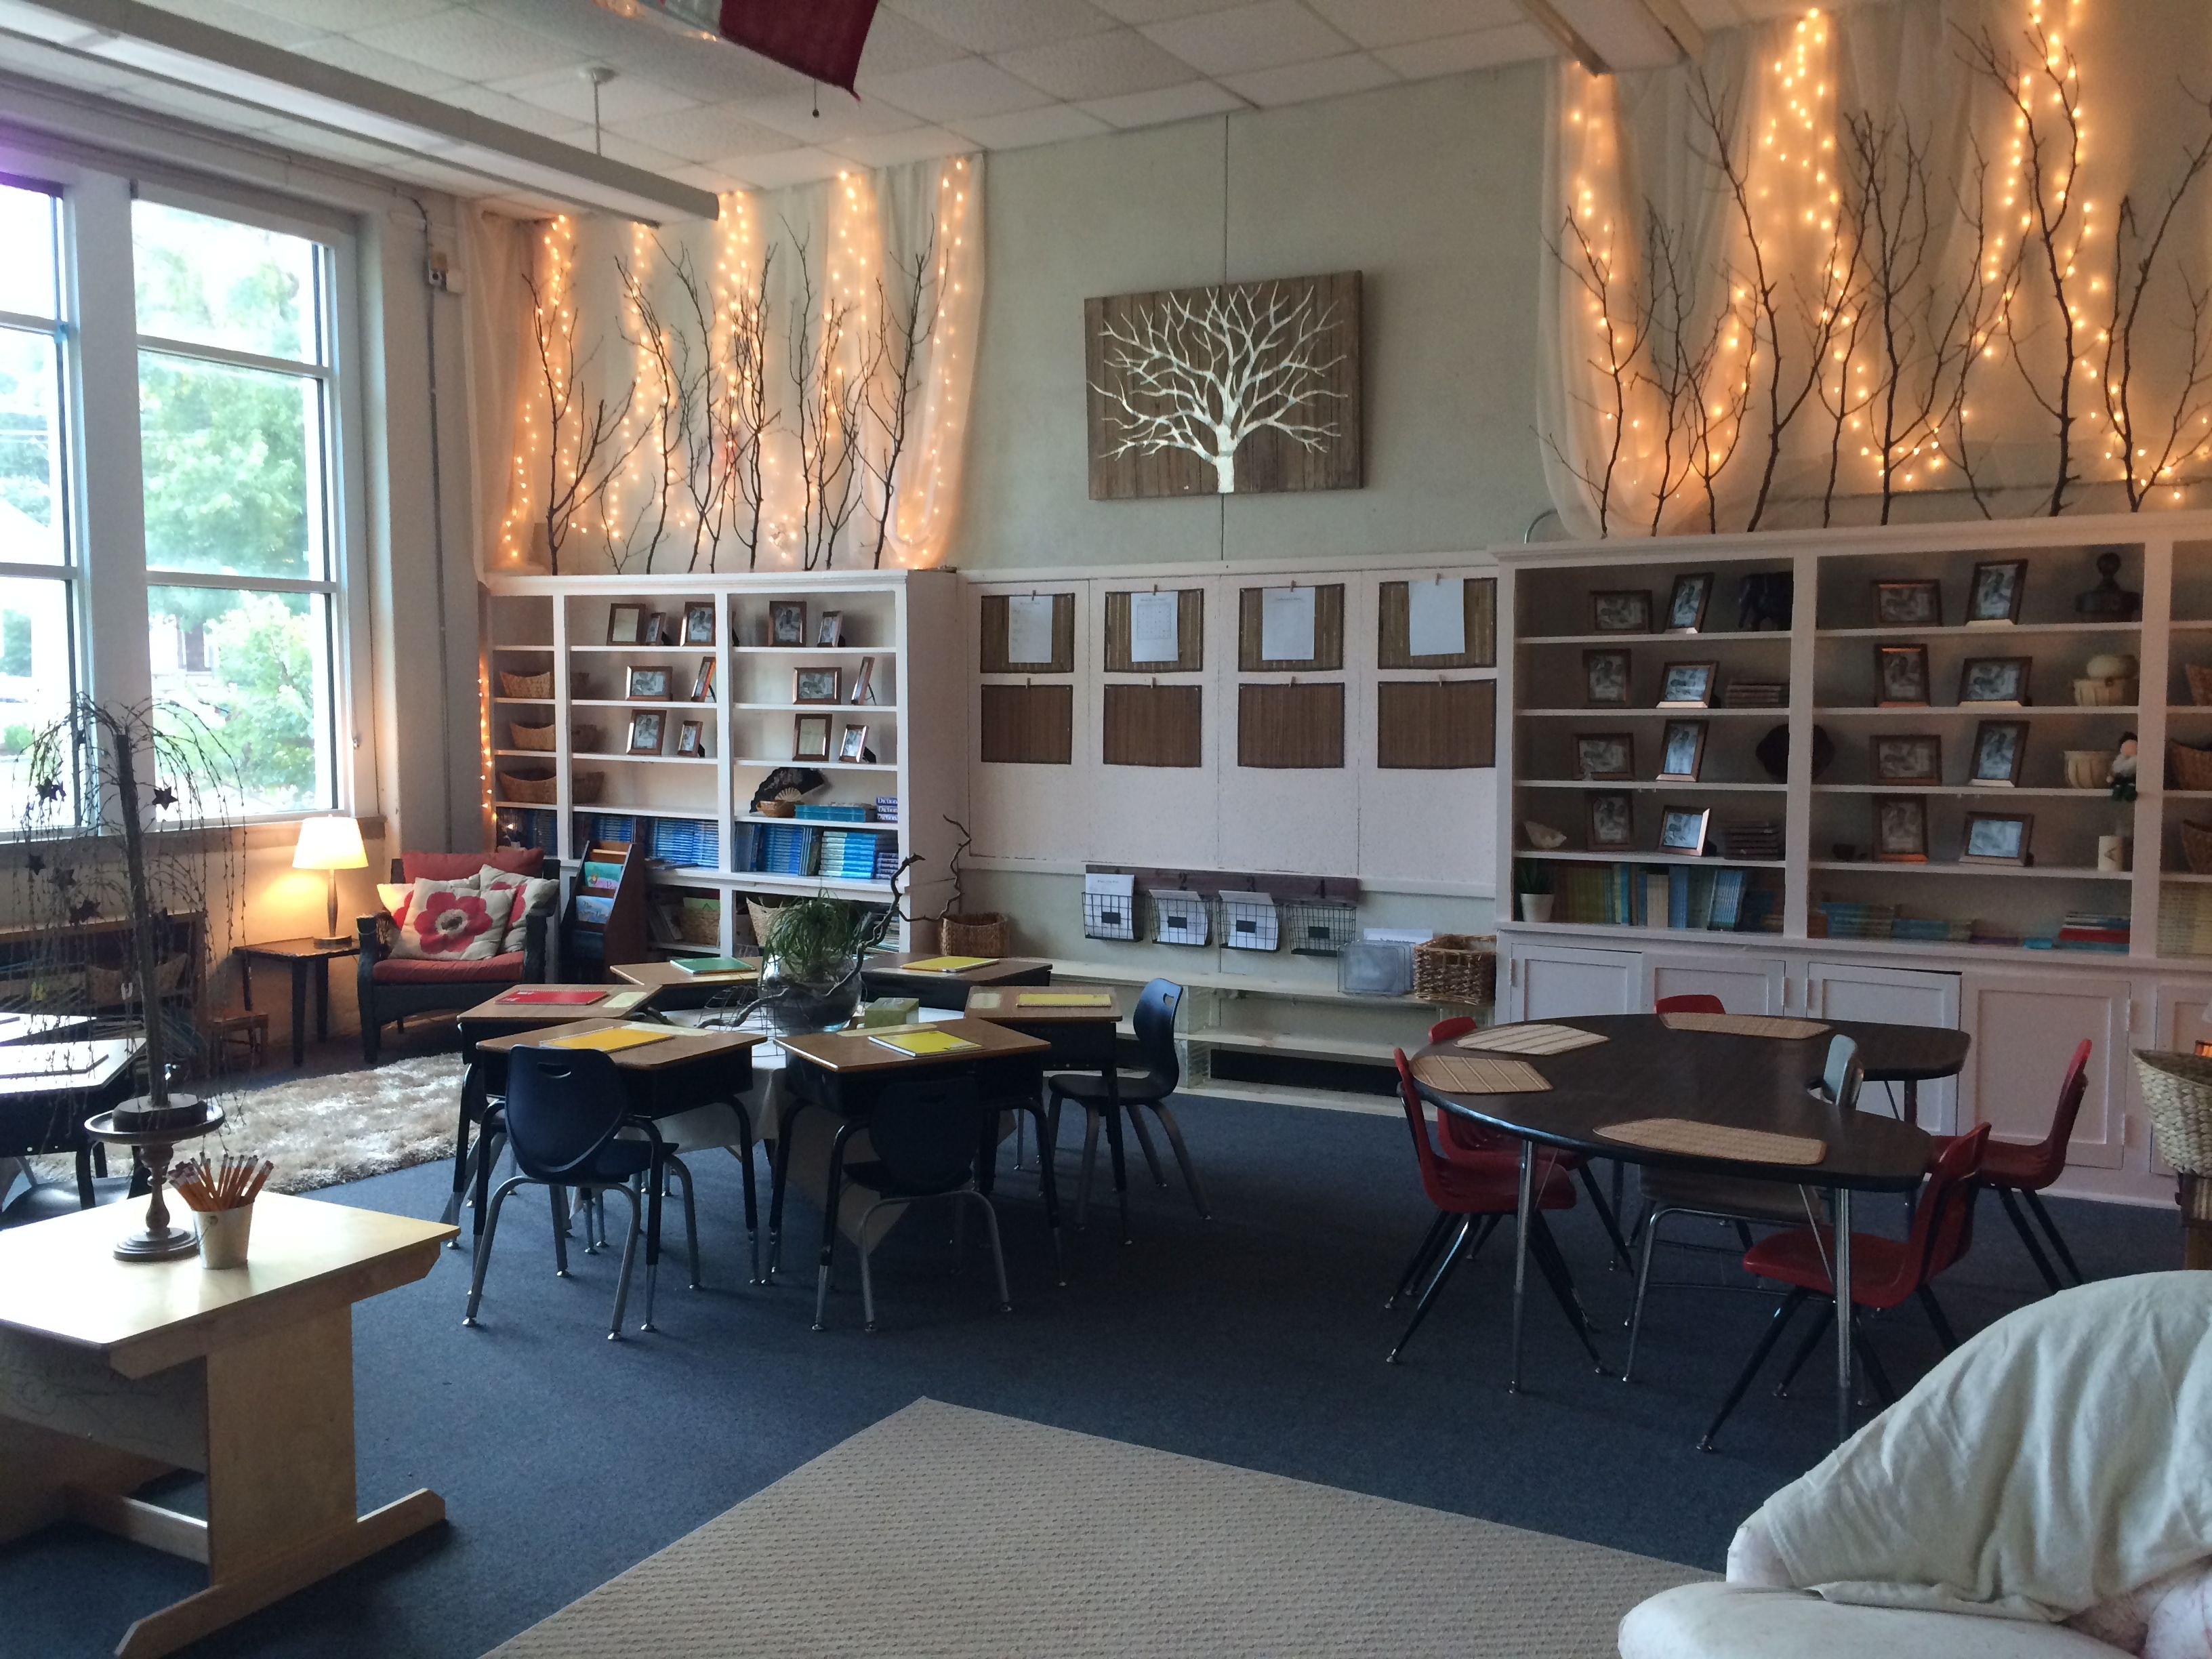 Classroom Lighting Design : About adding light into play spaces from fairy dust